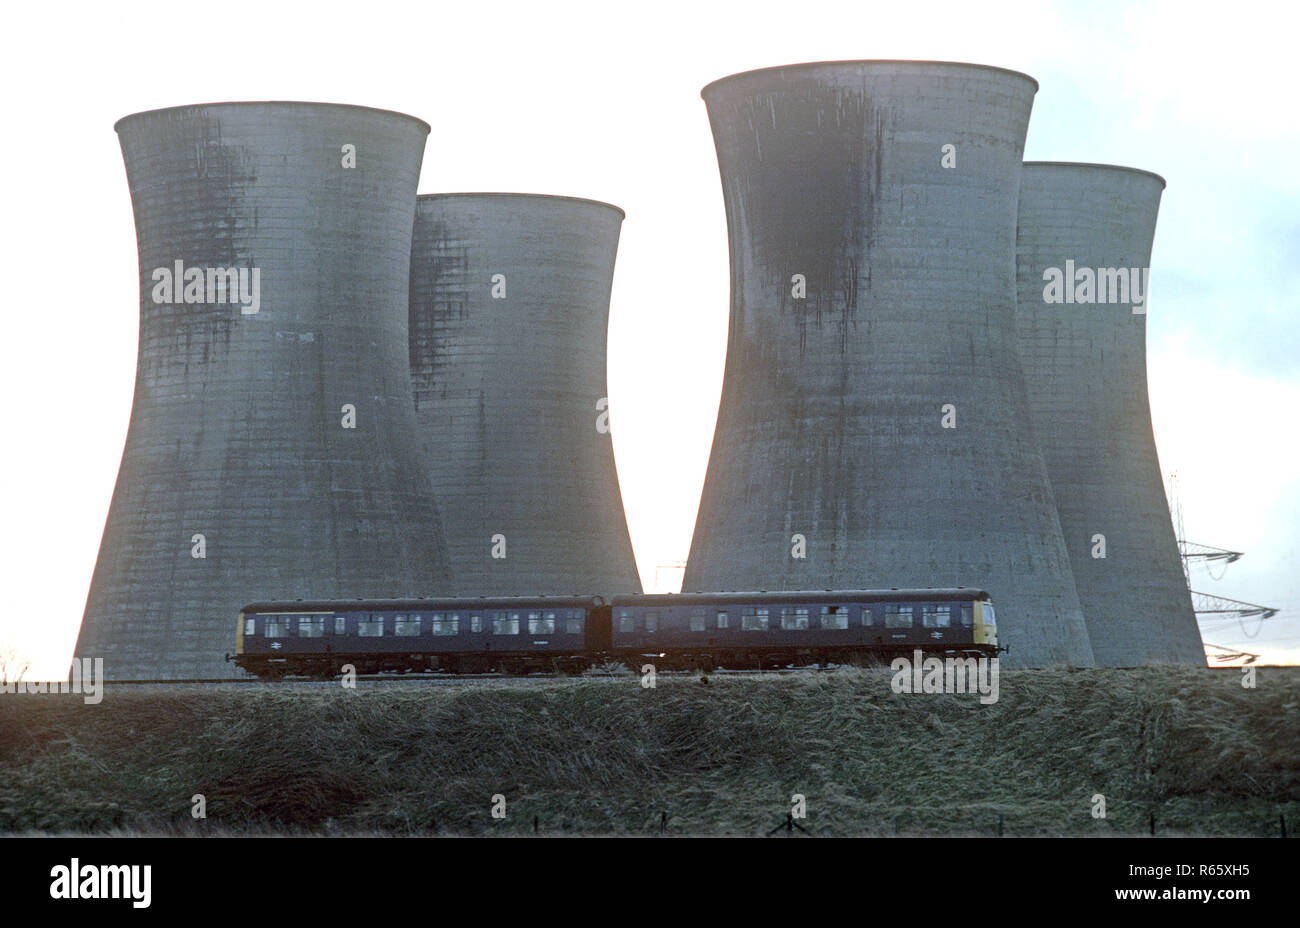 Diesel Multiple Unit passing in front of power station cooling towers on the British Rail Preston to Colne railway line, Lancashire, Great Britain - Stock Image